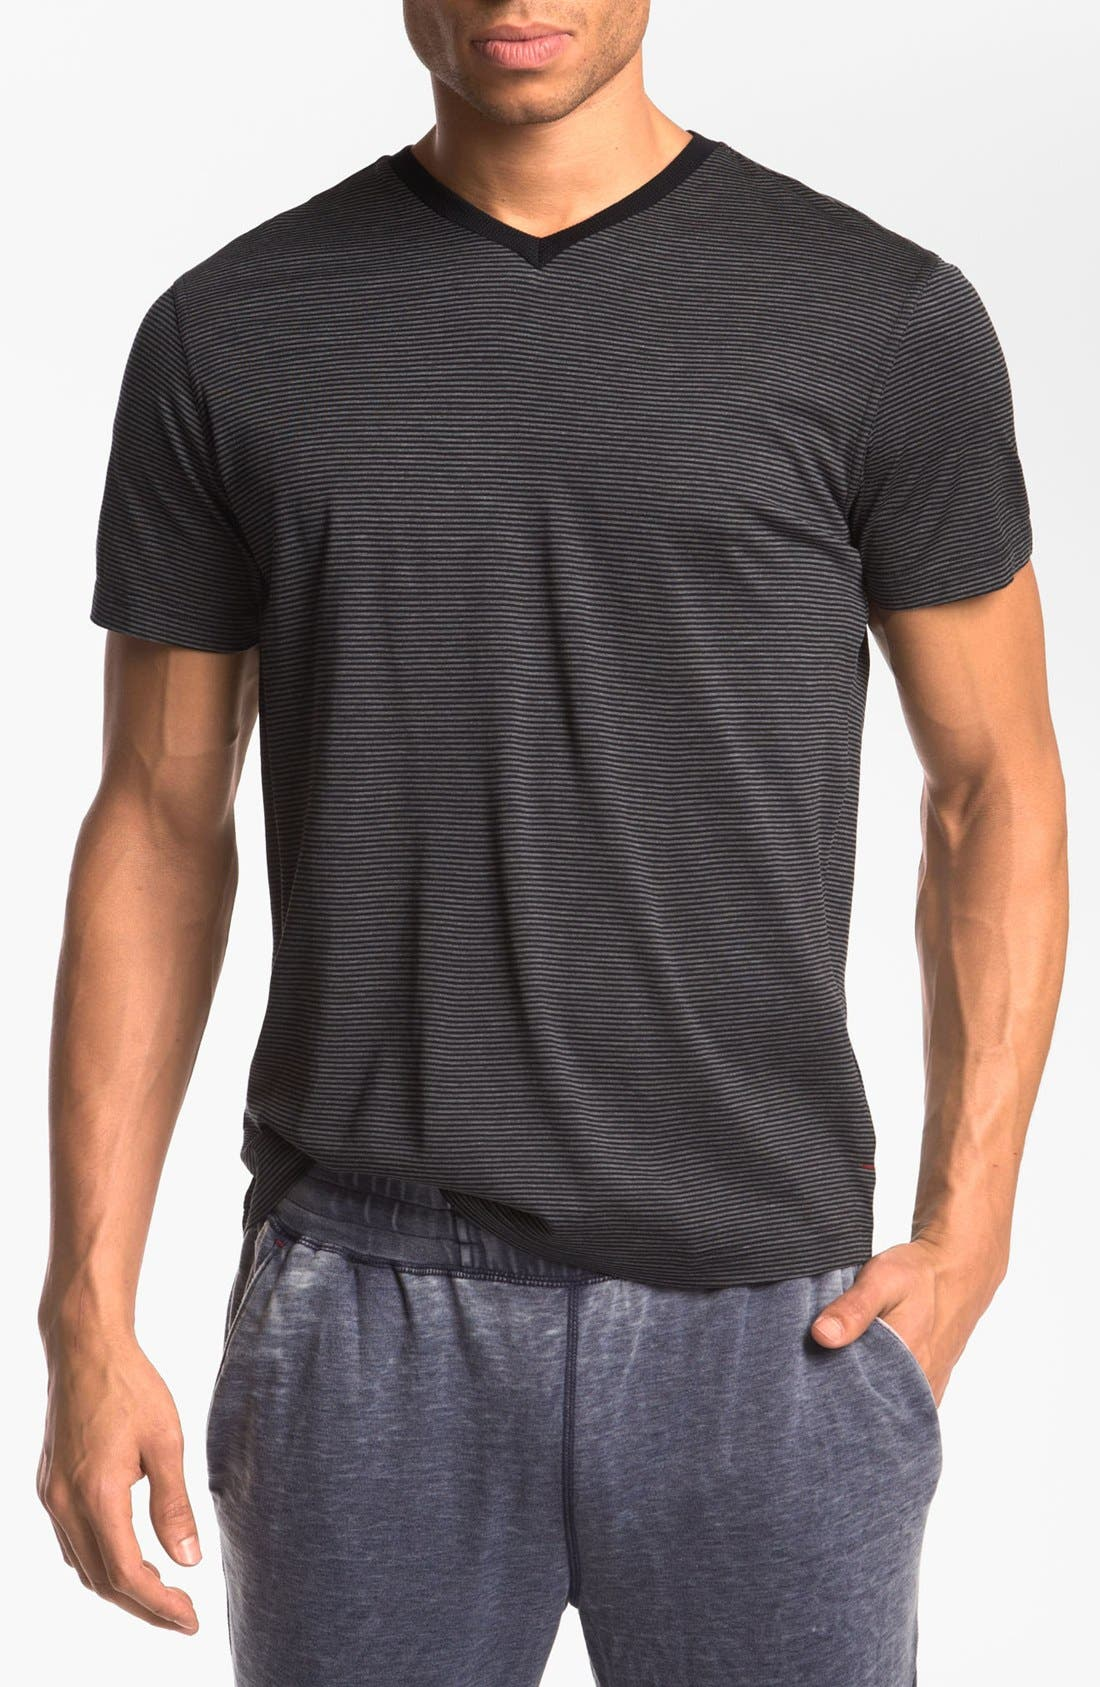 Alternate Image 1 Selected - Daniel Buchler Silk & Cotton V-Neck T-Shirt